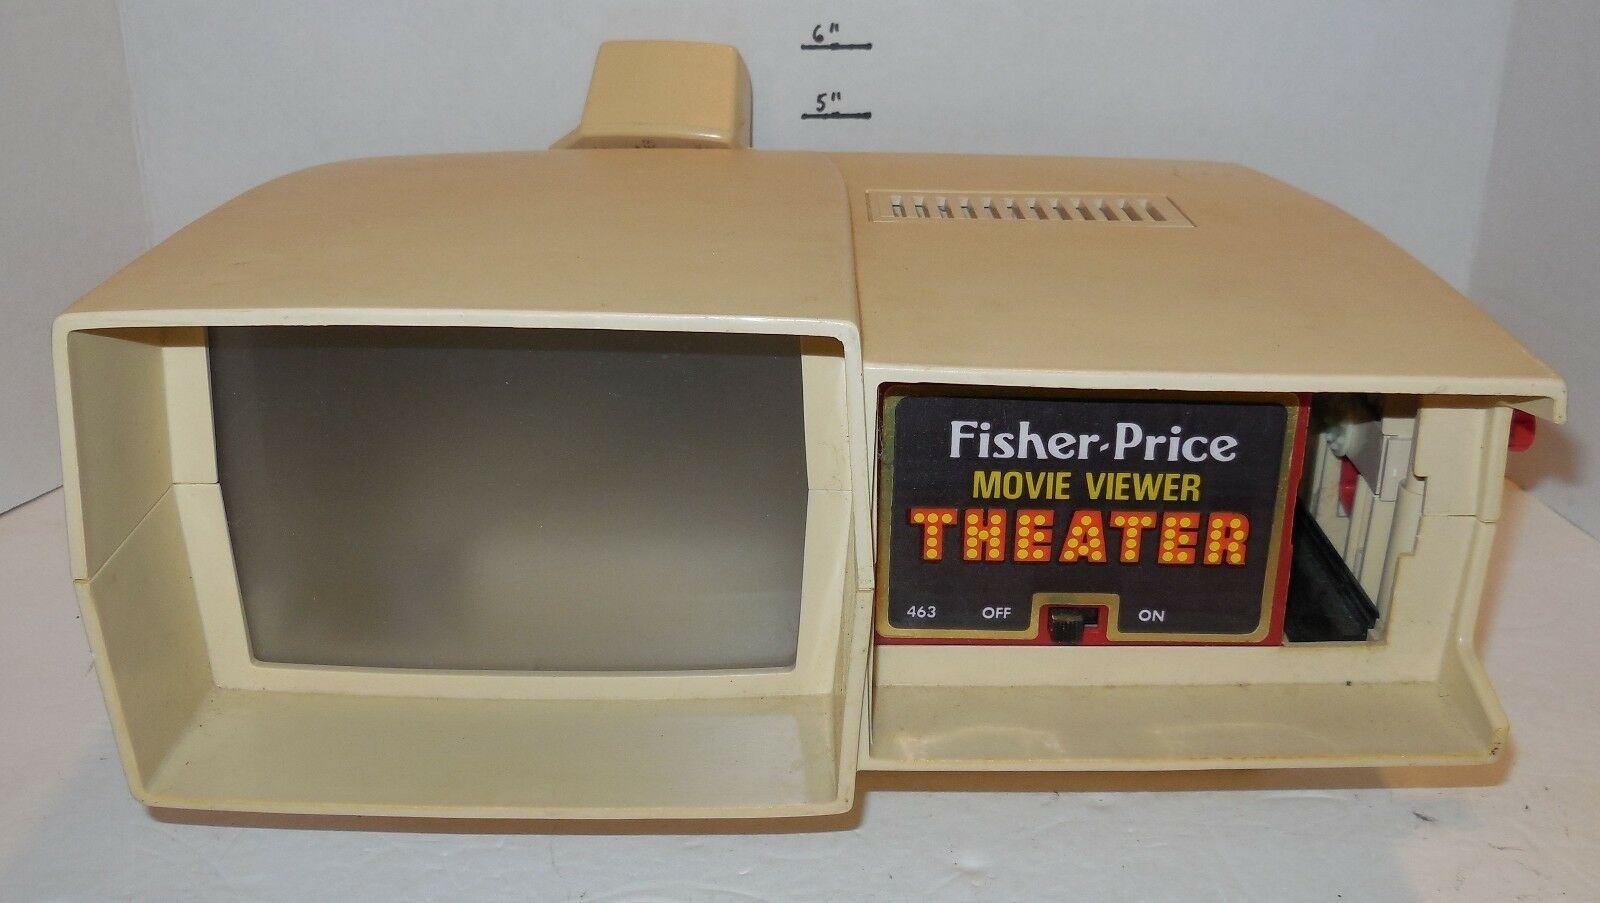 Vintage 1977 Fisher Price Movie Viewer Theater Tested Works Rare VHTF